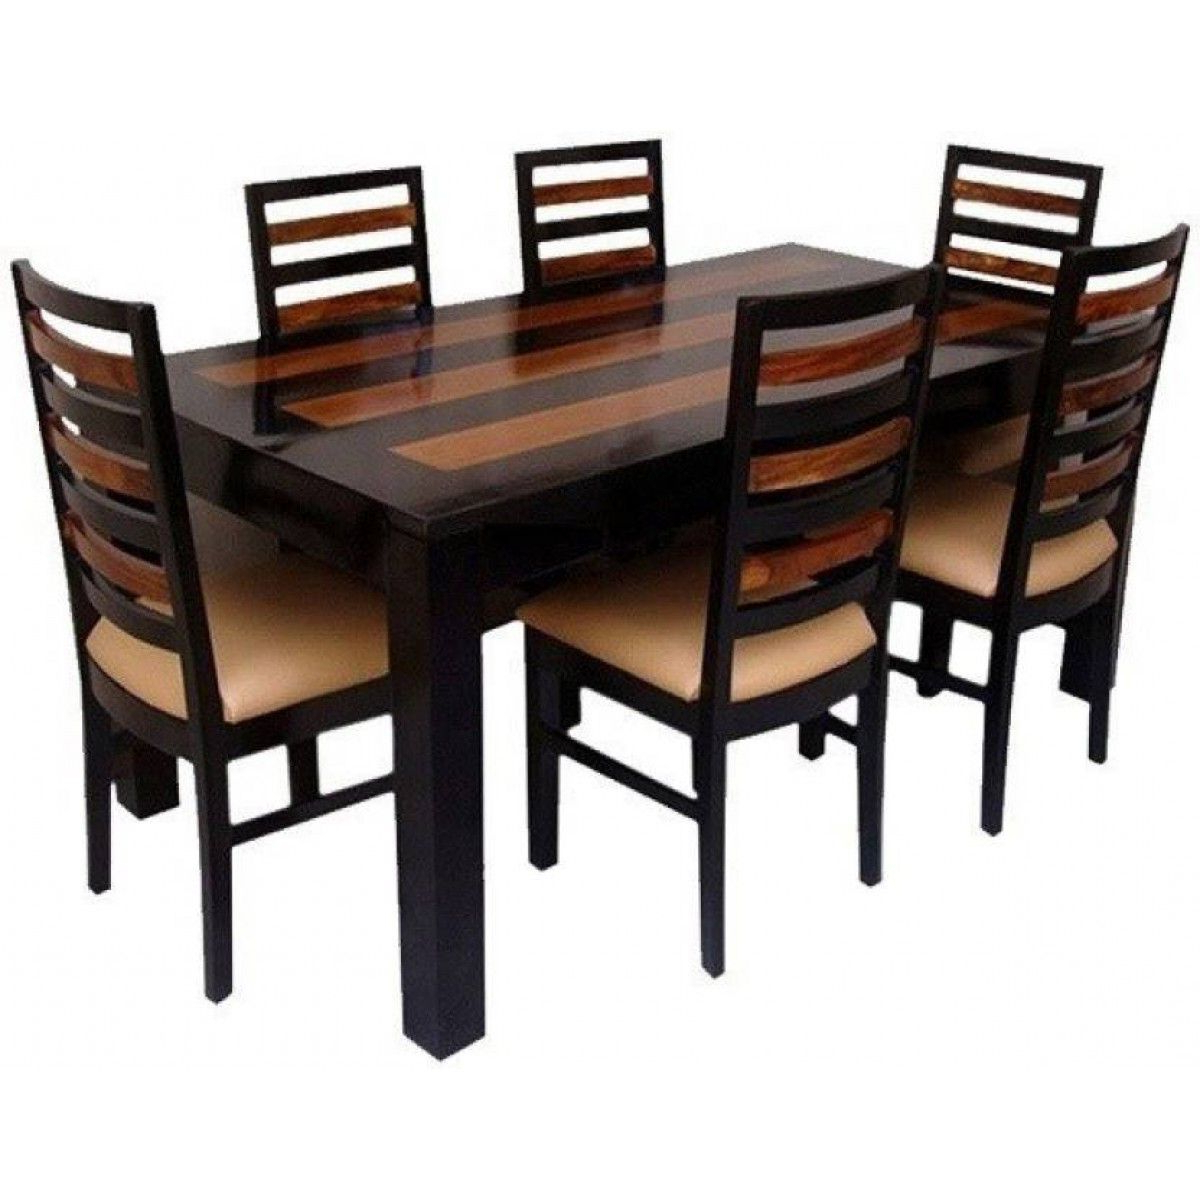 6 Seater Retangular Wood Contemporary Dining Tables In Most Current Wooden Designed Dining Table Set (View 6 of 25)